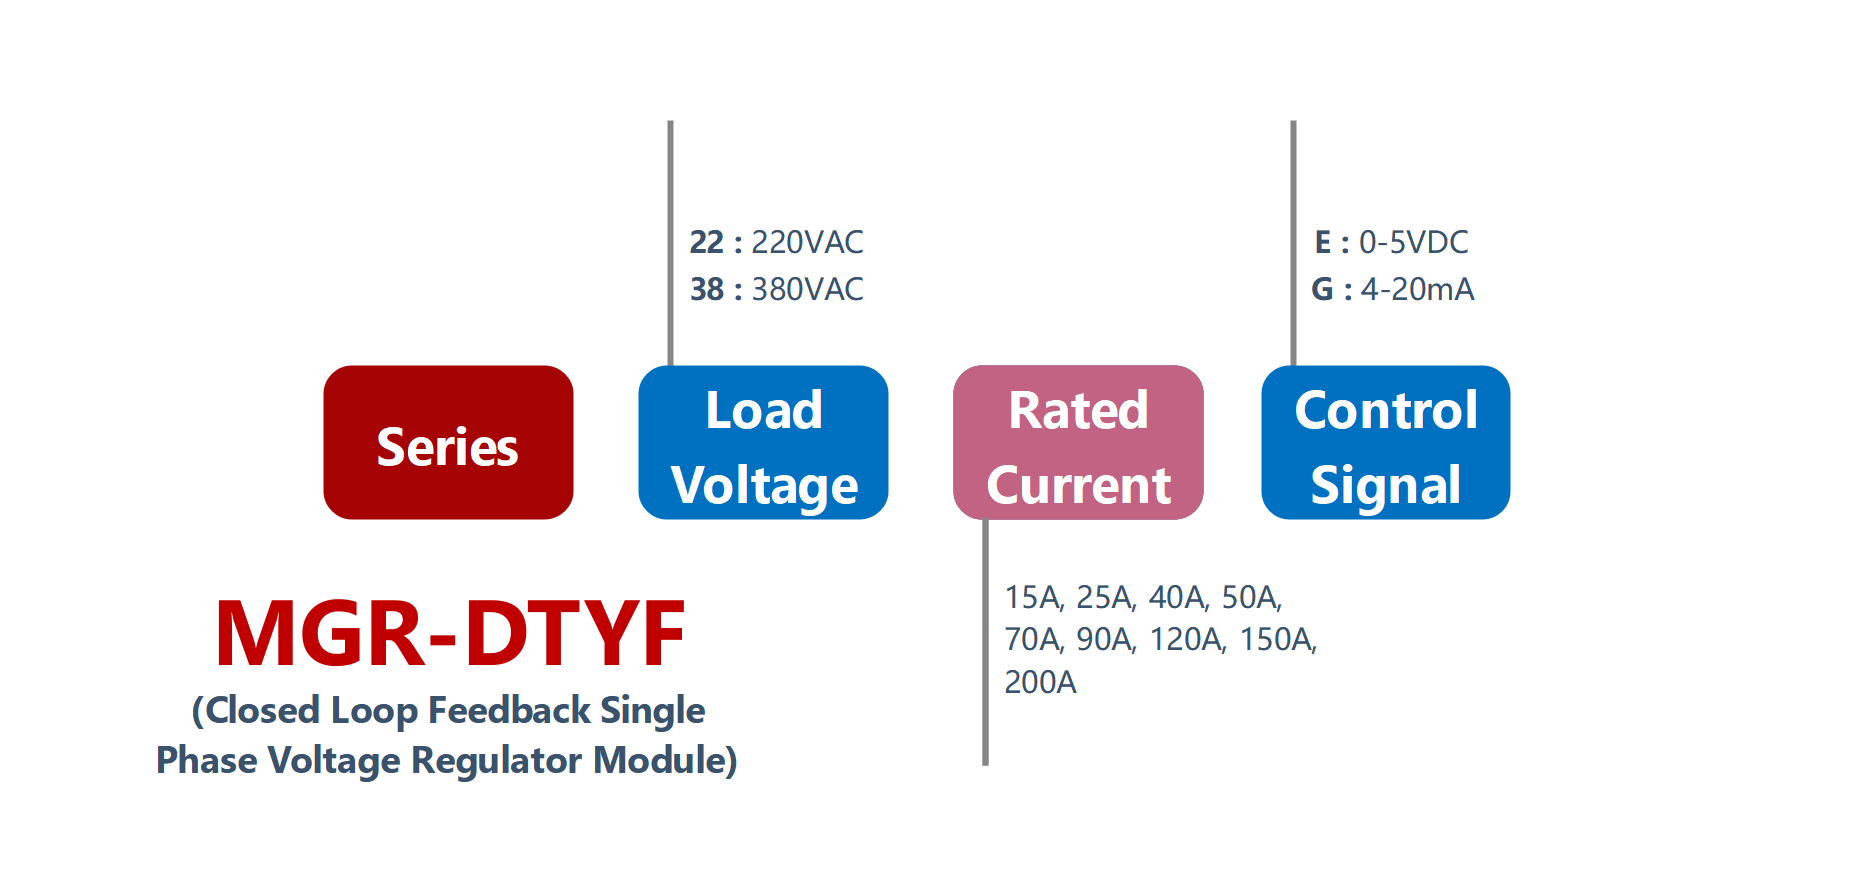 How to order MGR-DTYF Series Voltage Power Regulator